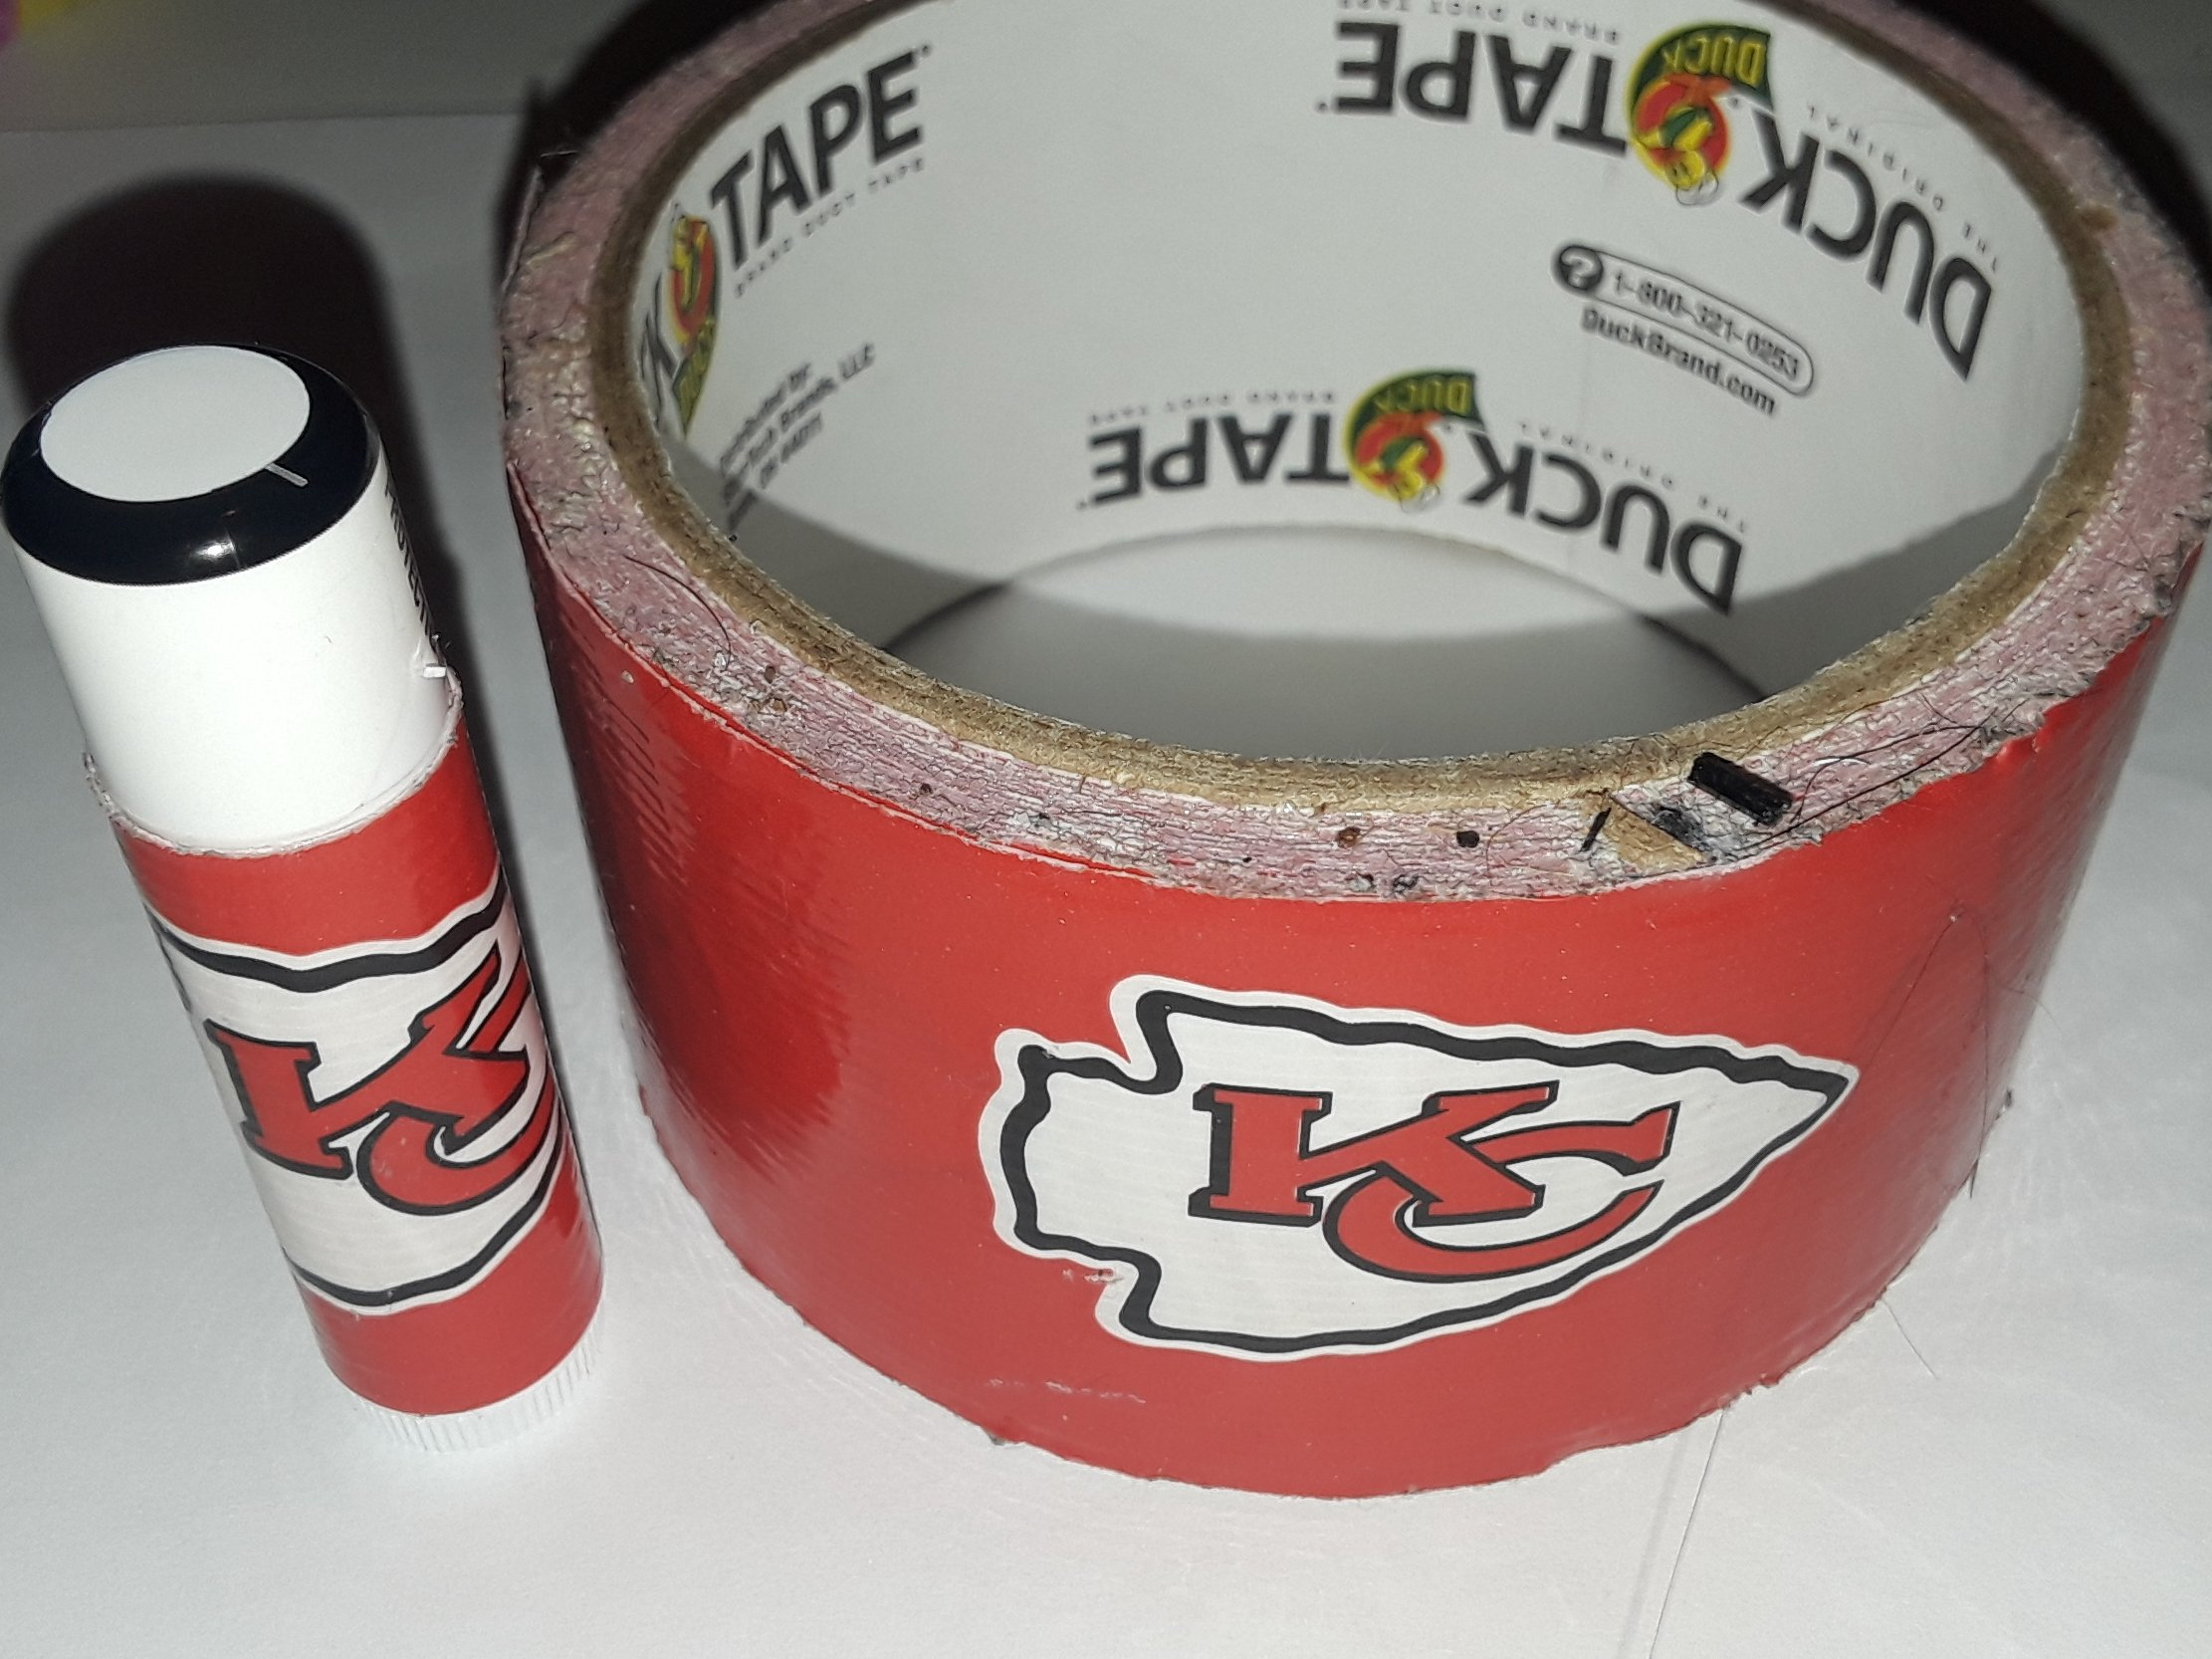 5 Kansas City Chiefs NFL Chap Stick Lip Balm five pack pieces BULK